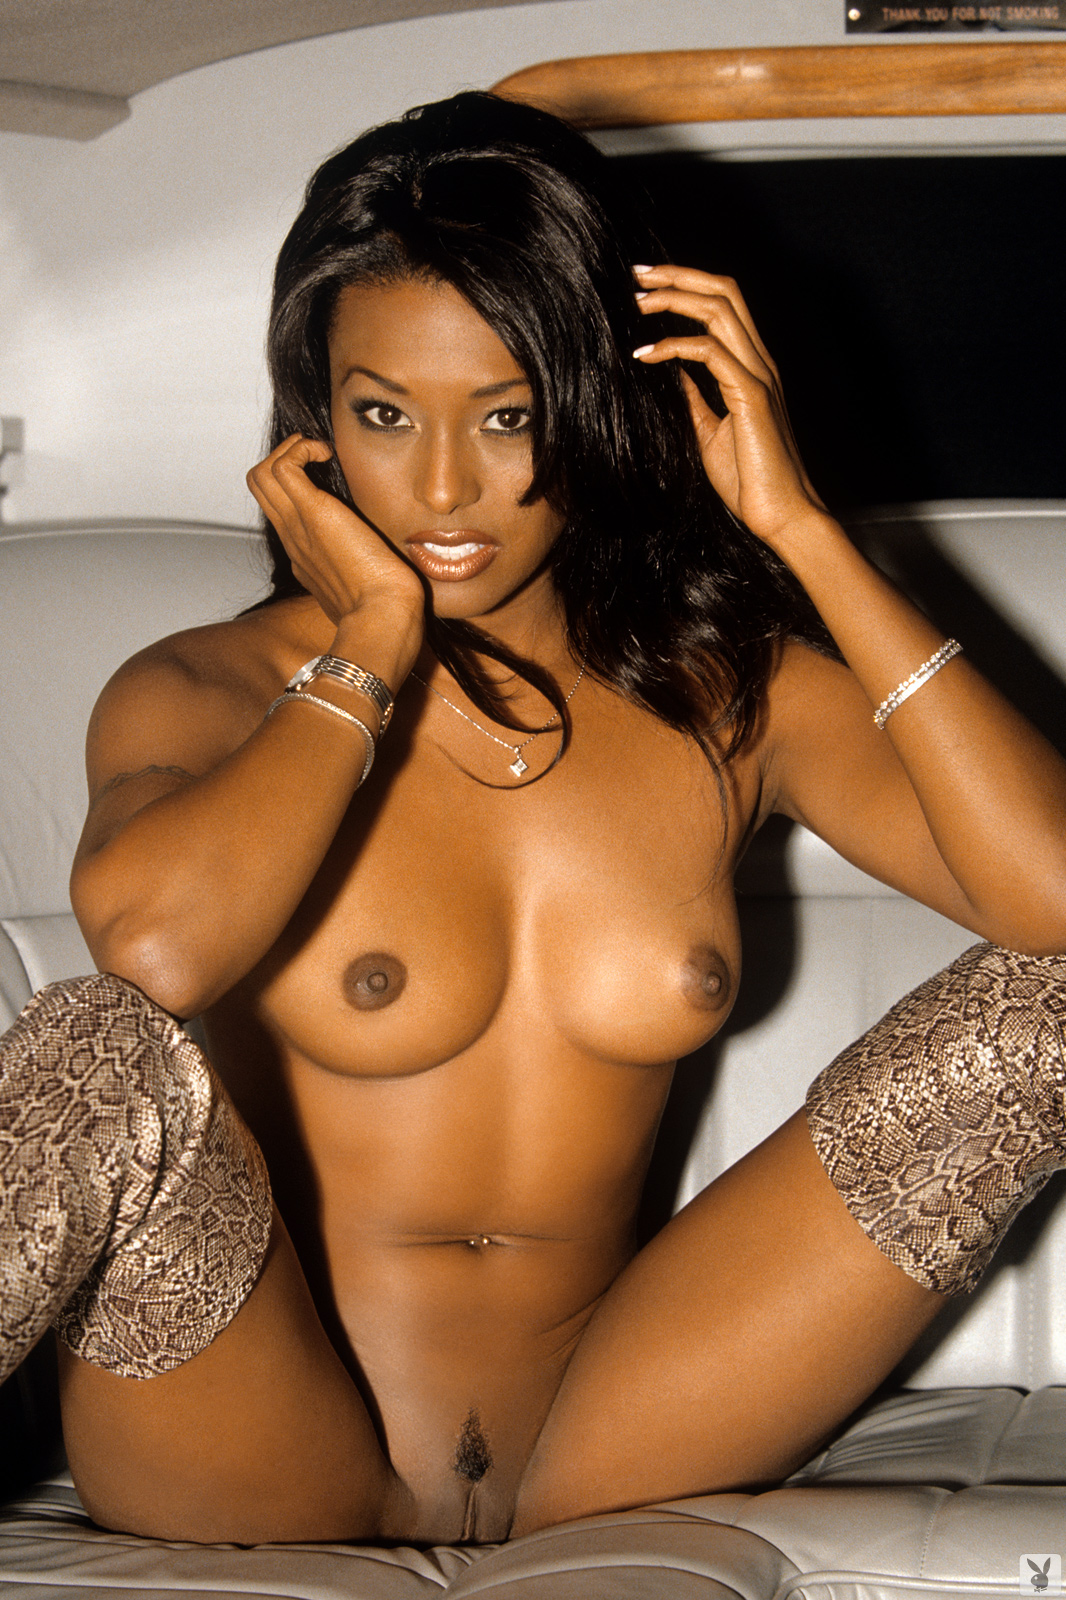 Phrase Hot nude black women movies and pics